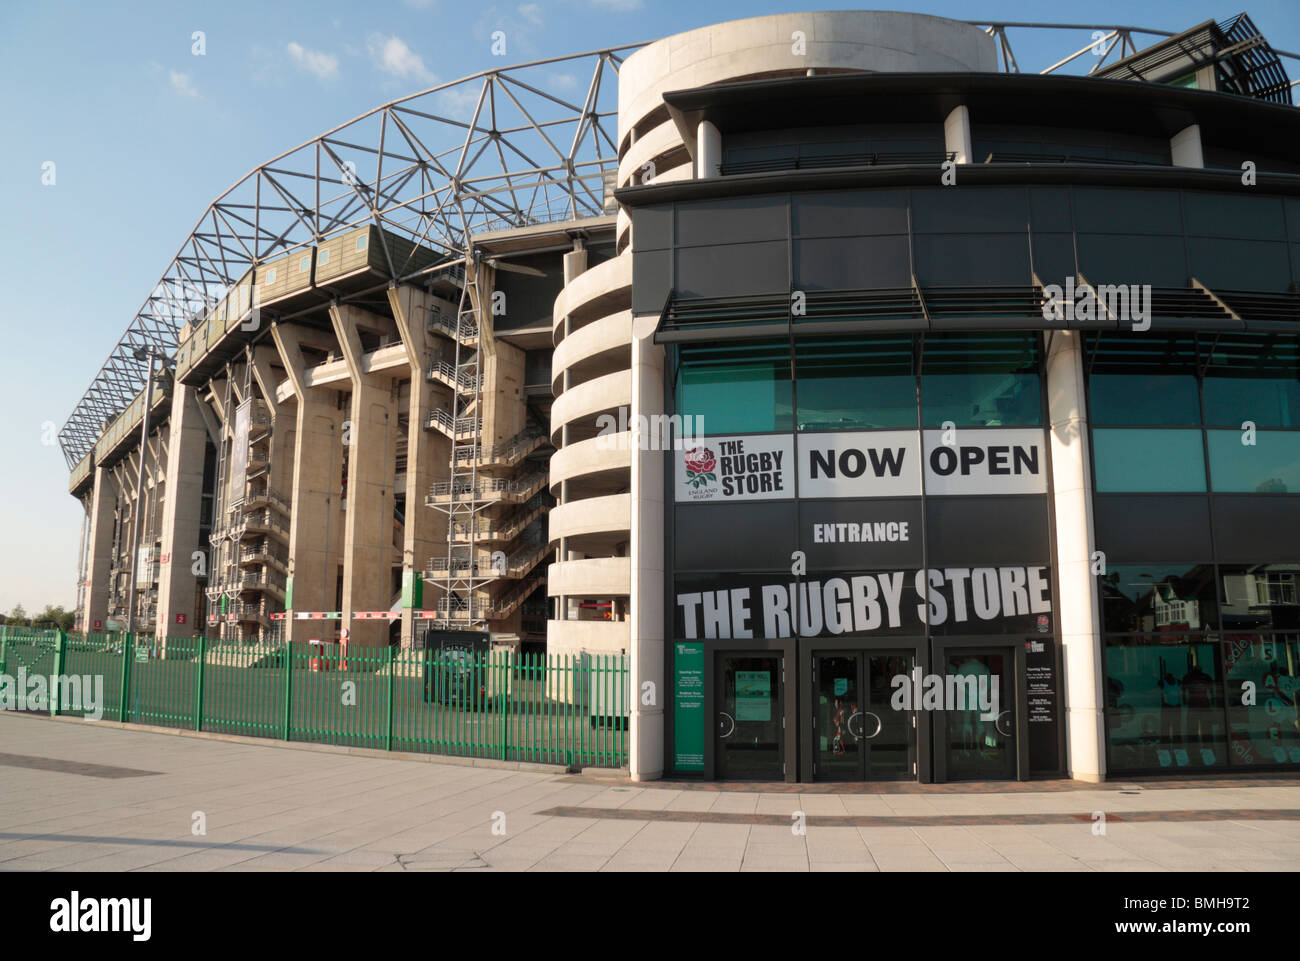 The Rugby Store at Twickenham Rugby Stadium, home of English International rugby, in south west London, UK. - Stock Image